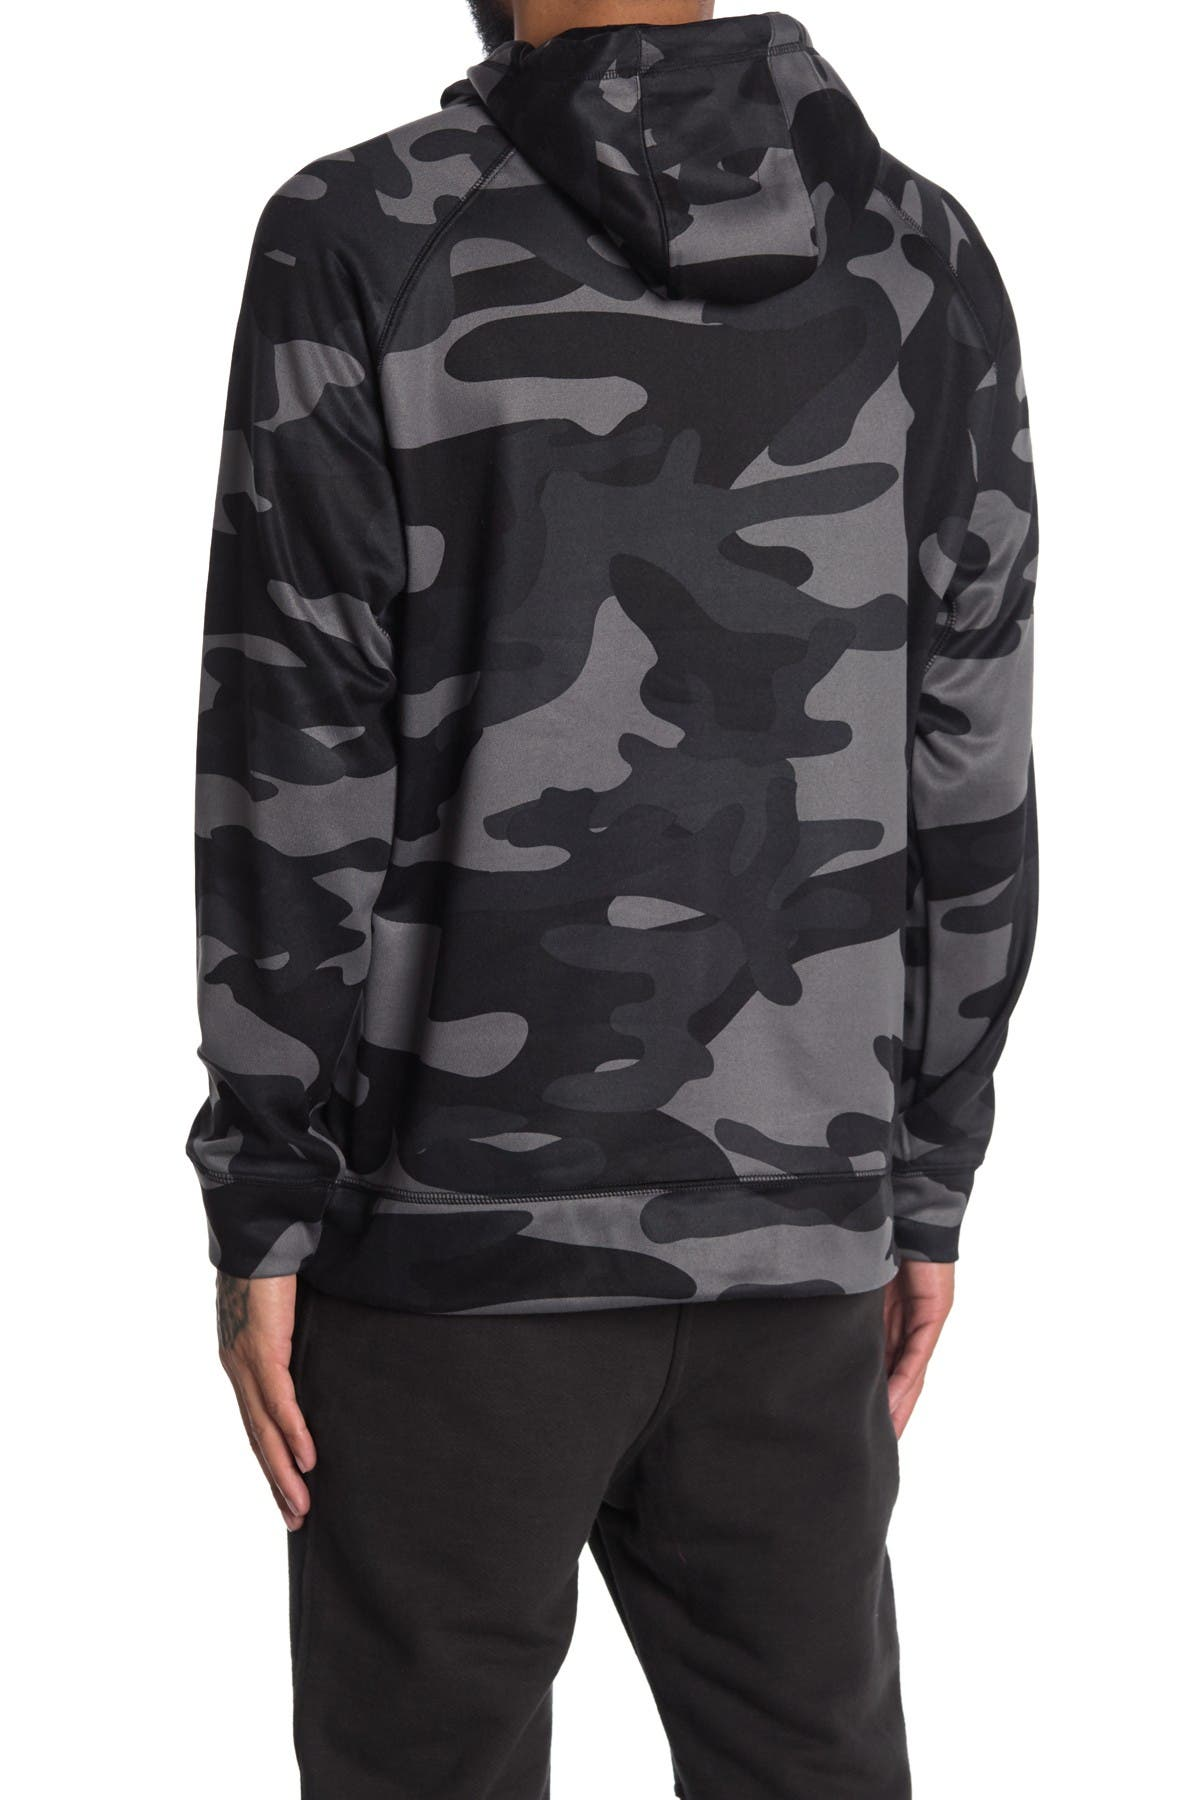 Image of Burnside Camo Print Performance Pullover Hoodie